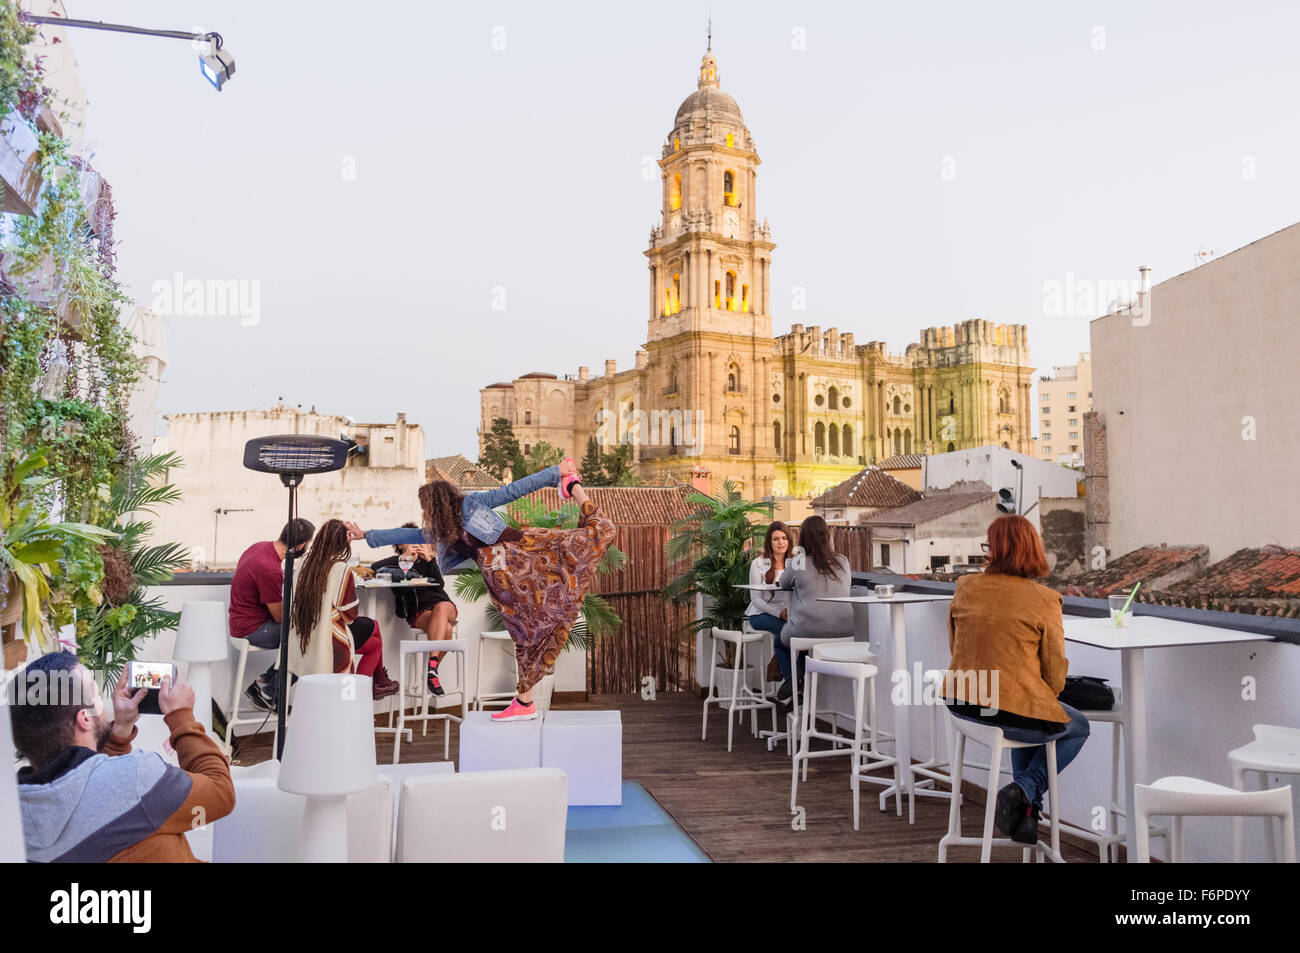 People at rooftop terrace bar with illuminated Cathedral in background. Malaga, Andalusia, Spain - Stock Image